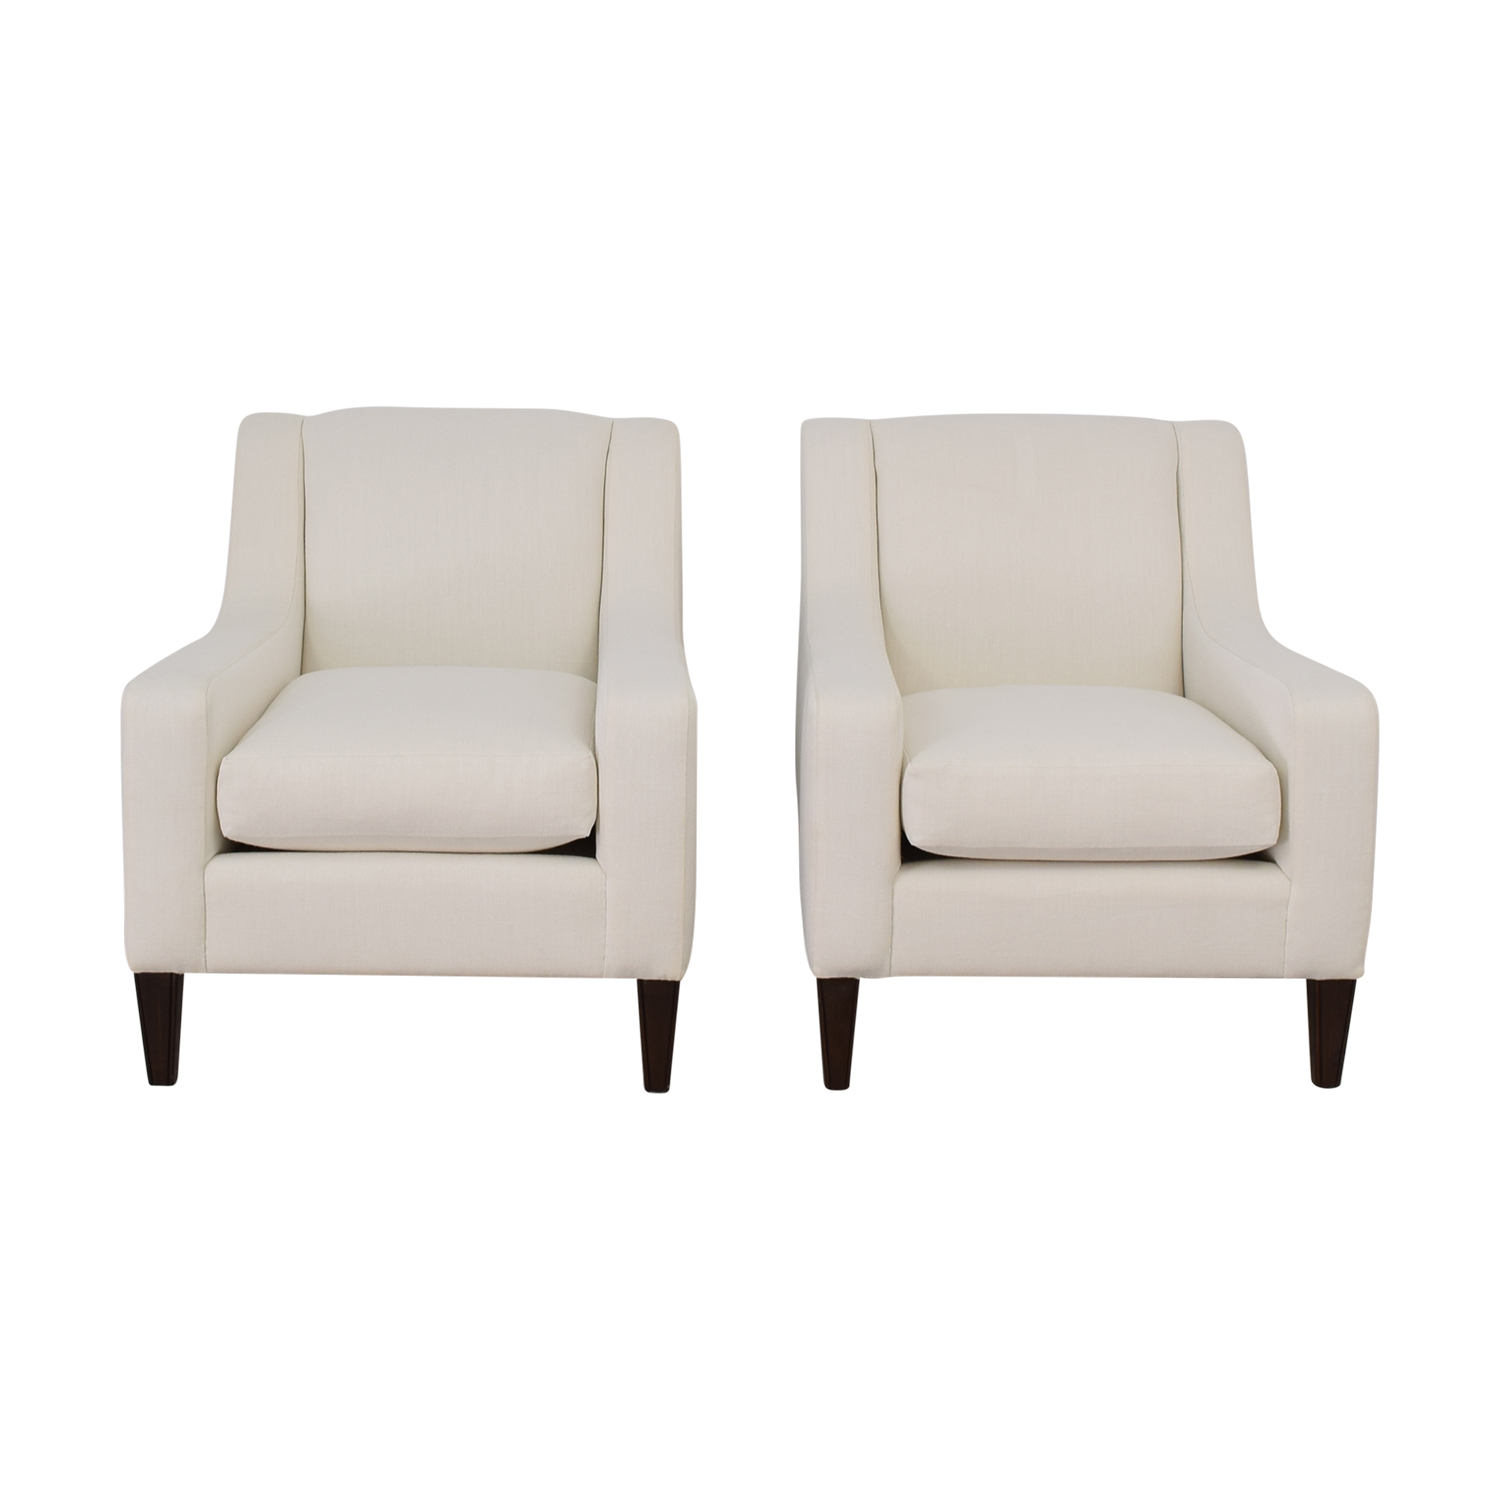 Furniture Masters Furniture Masters Neutral Sleek Club Chairs nj